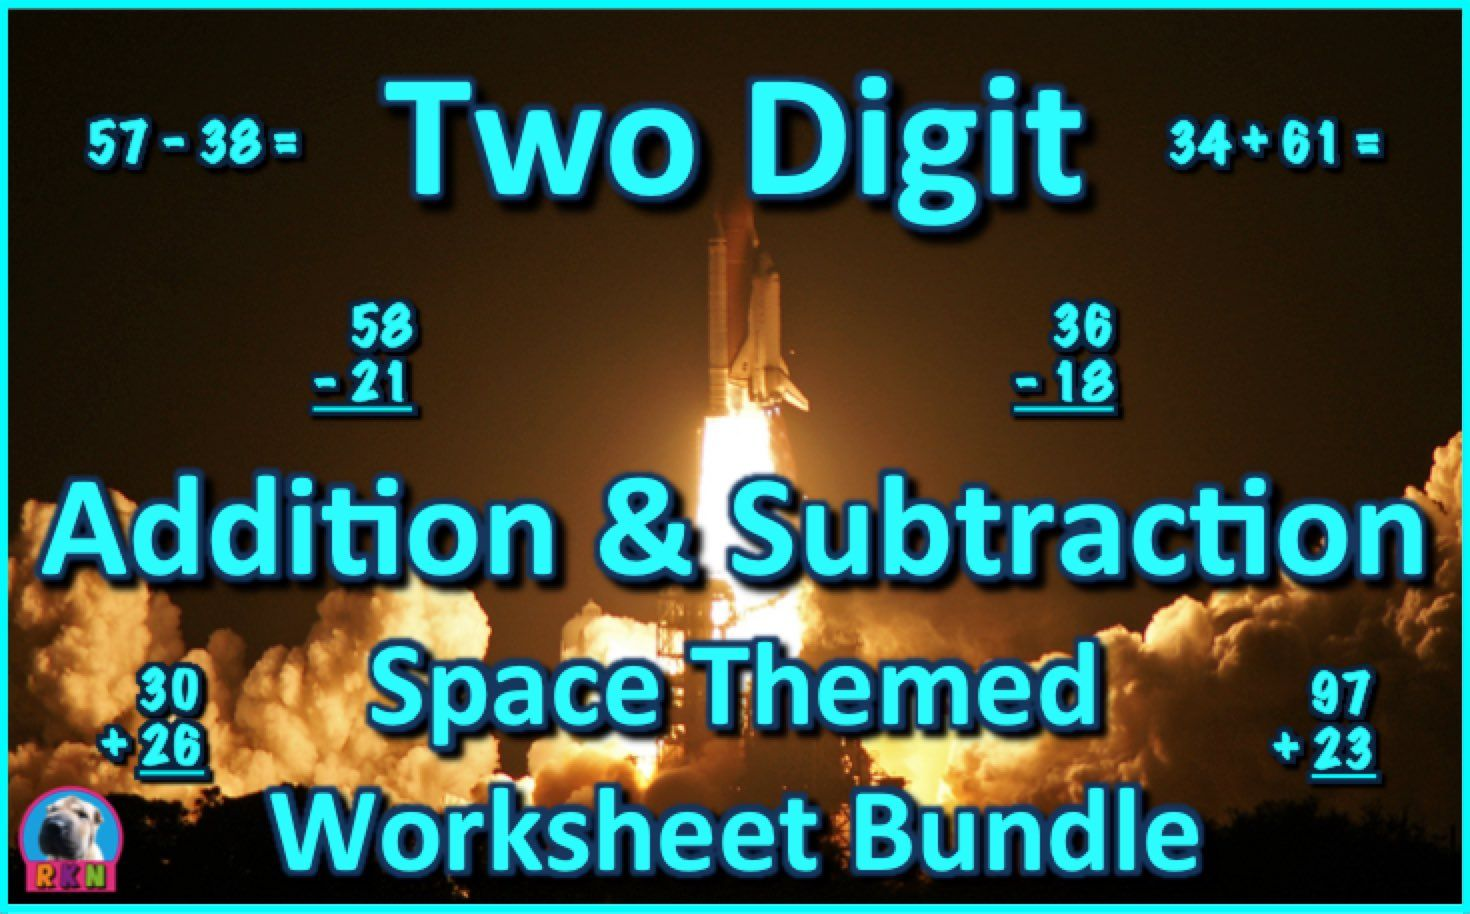 This Bundle Includes All Four Space Themed Two Digit